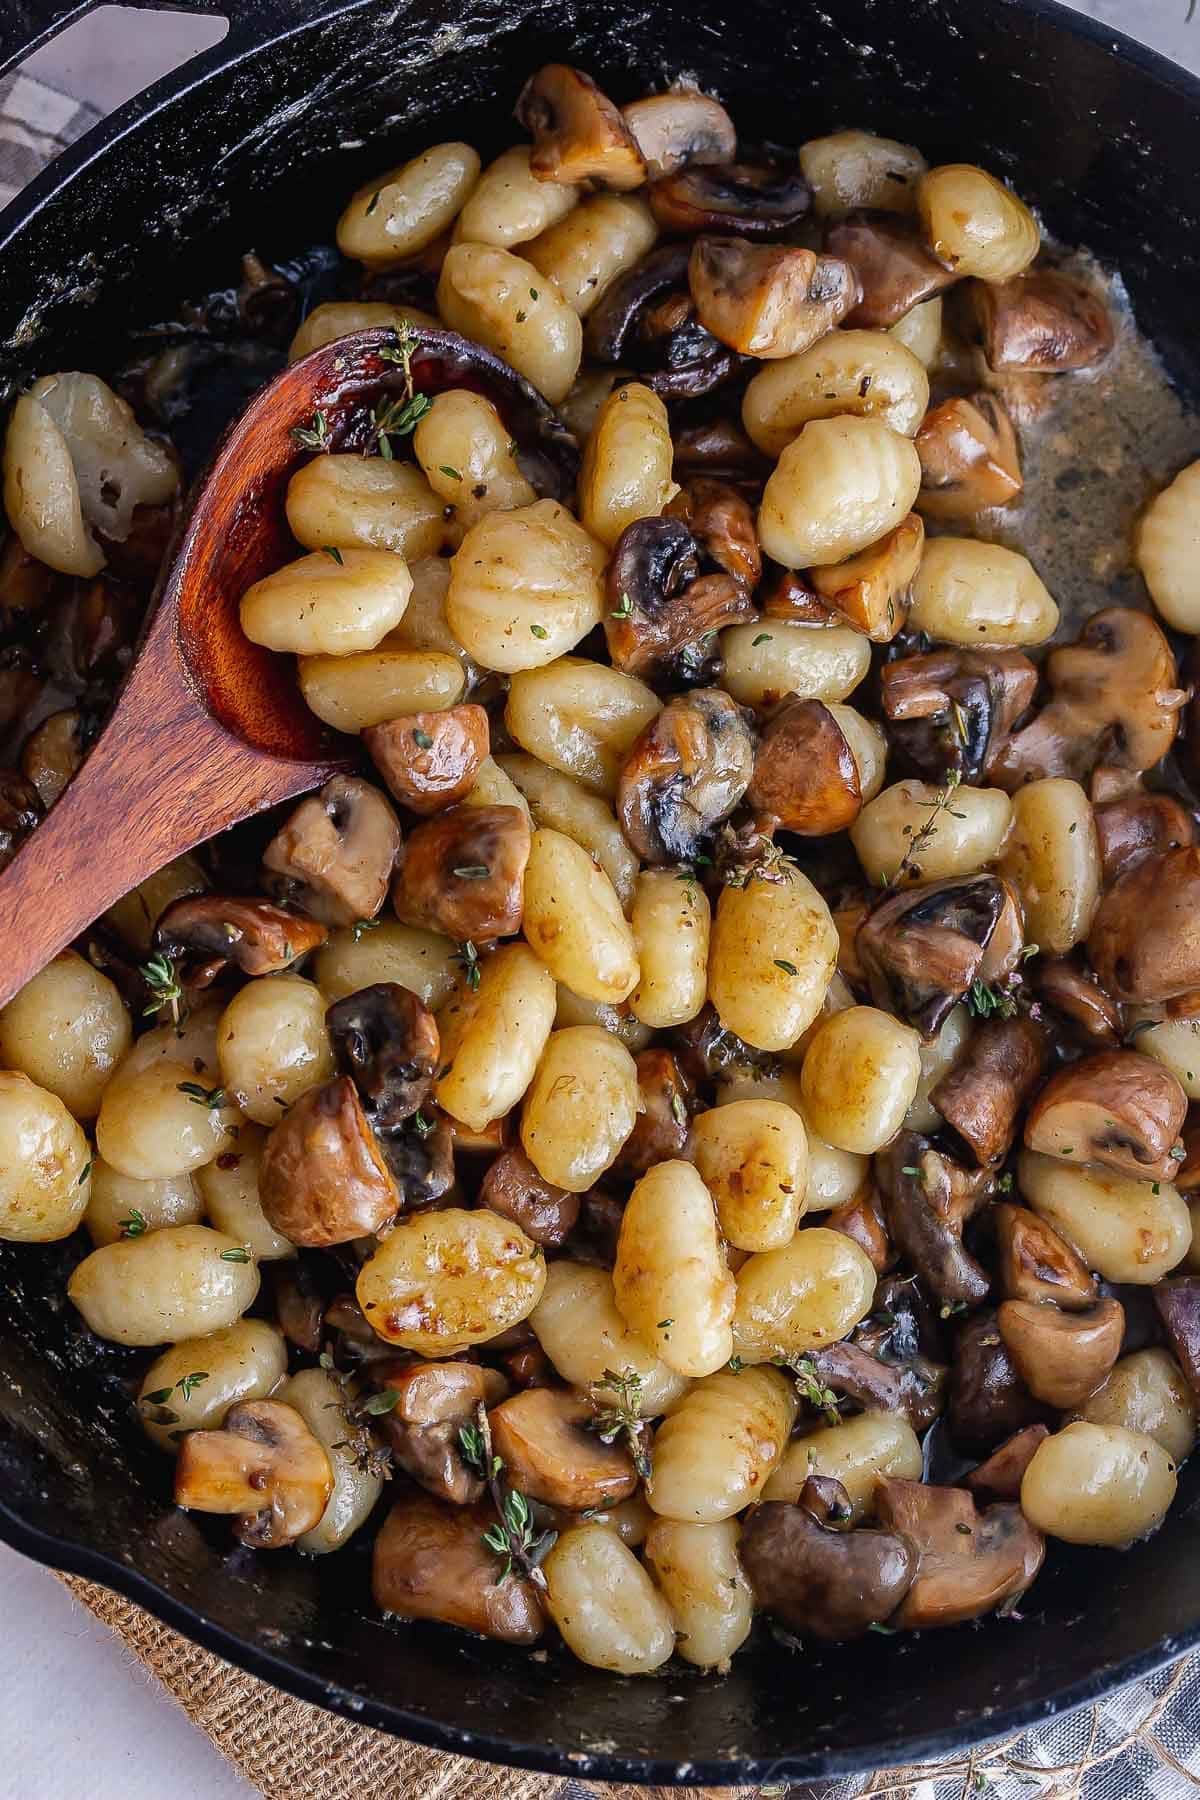 Overhead shot of mushroom gnocchi with a wooden spoon